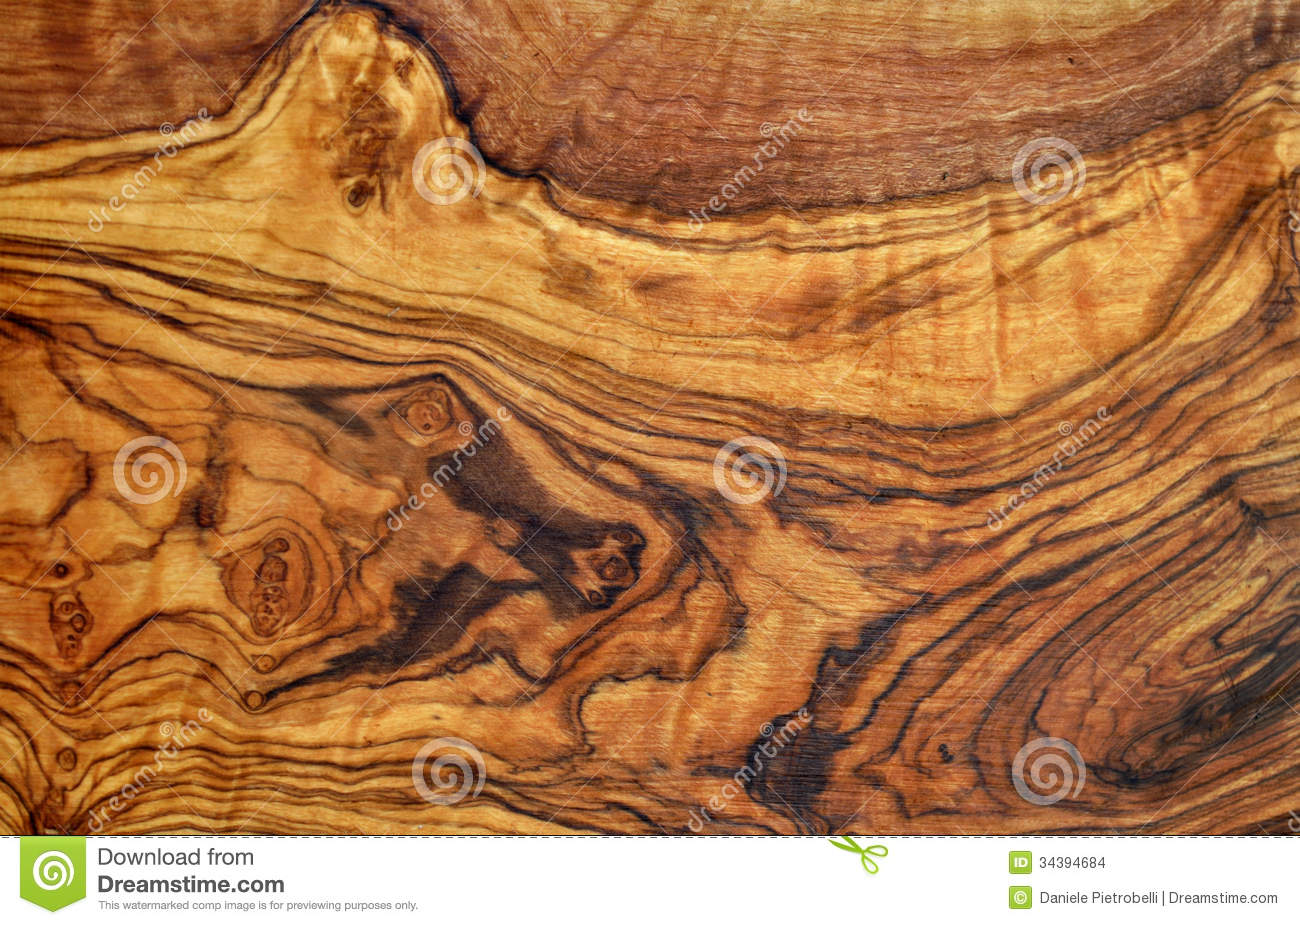 Background Olive Wood Stock Images - Image: 34394684